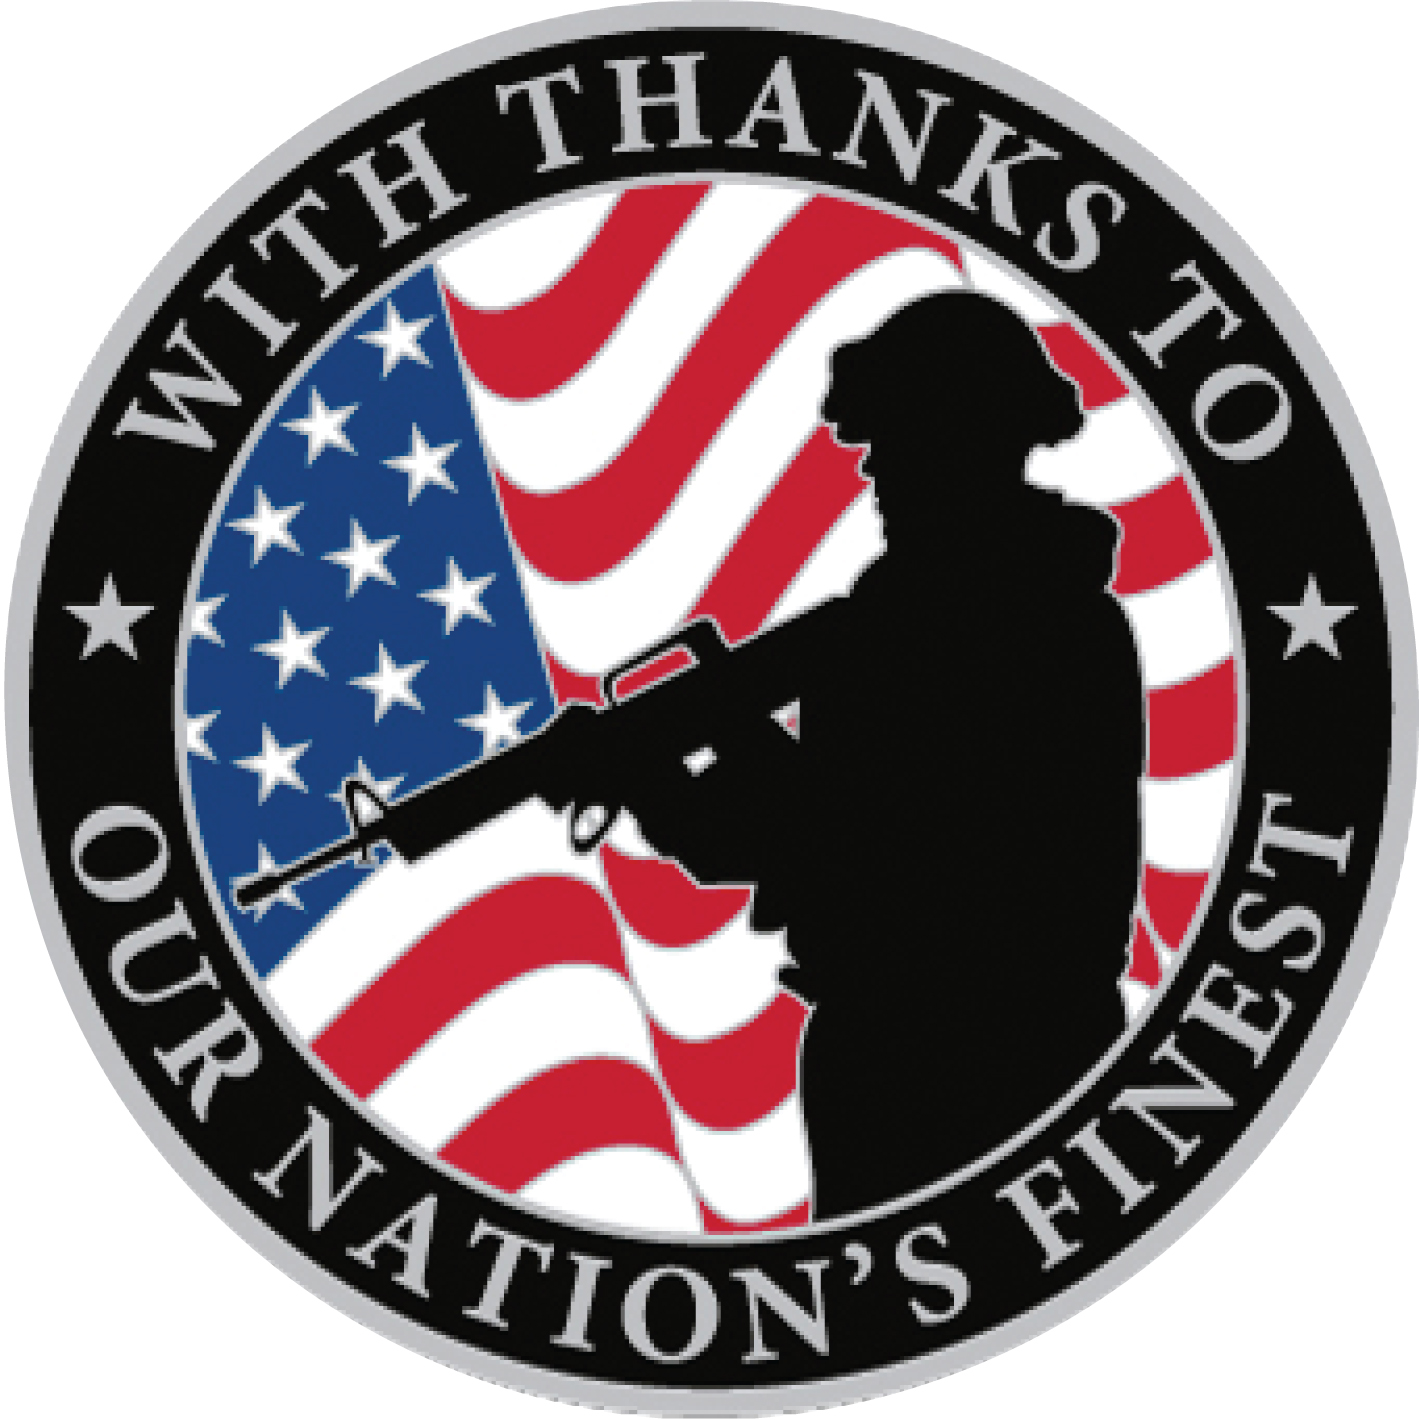 us military logos clip art. Our Commitme-us military logos clip art. Our Commitment to Veterans-12